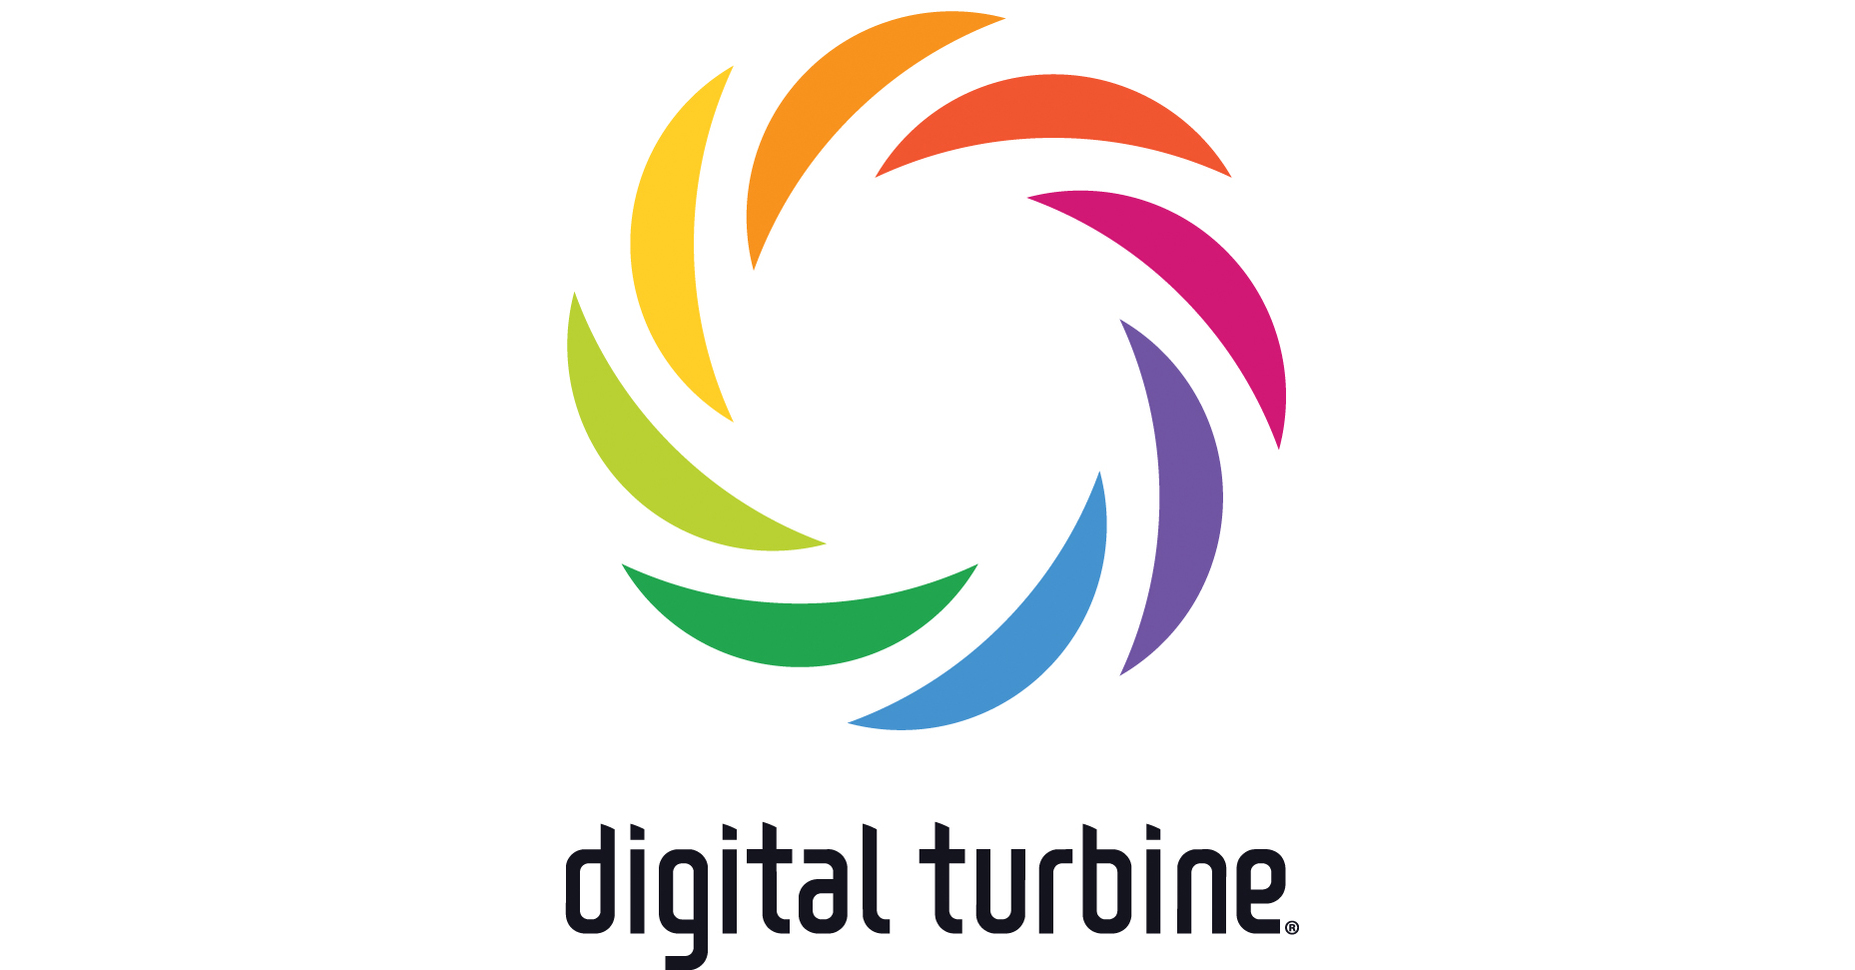 digital turbine announces the sale of content and